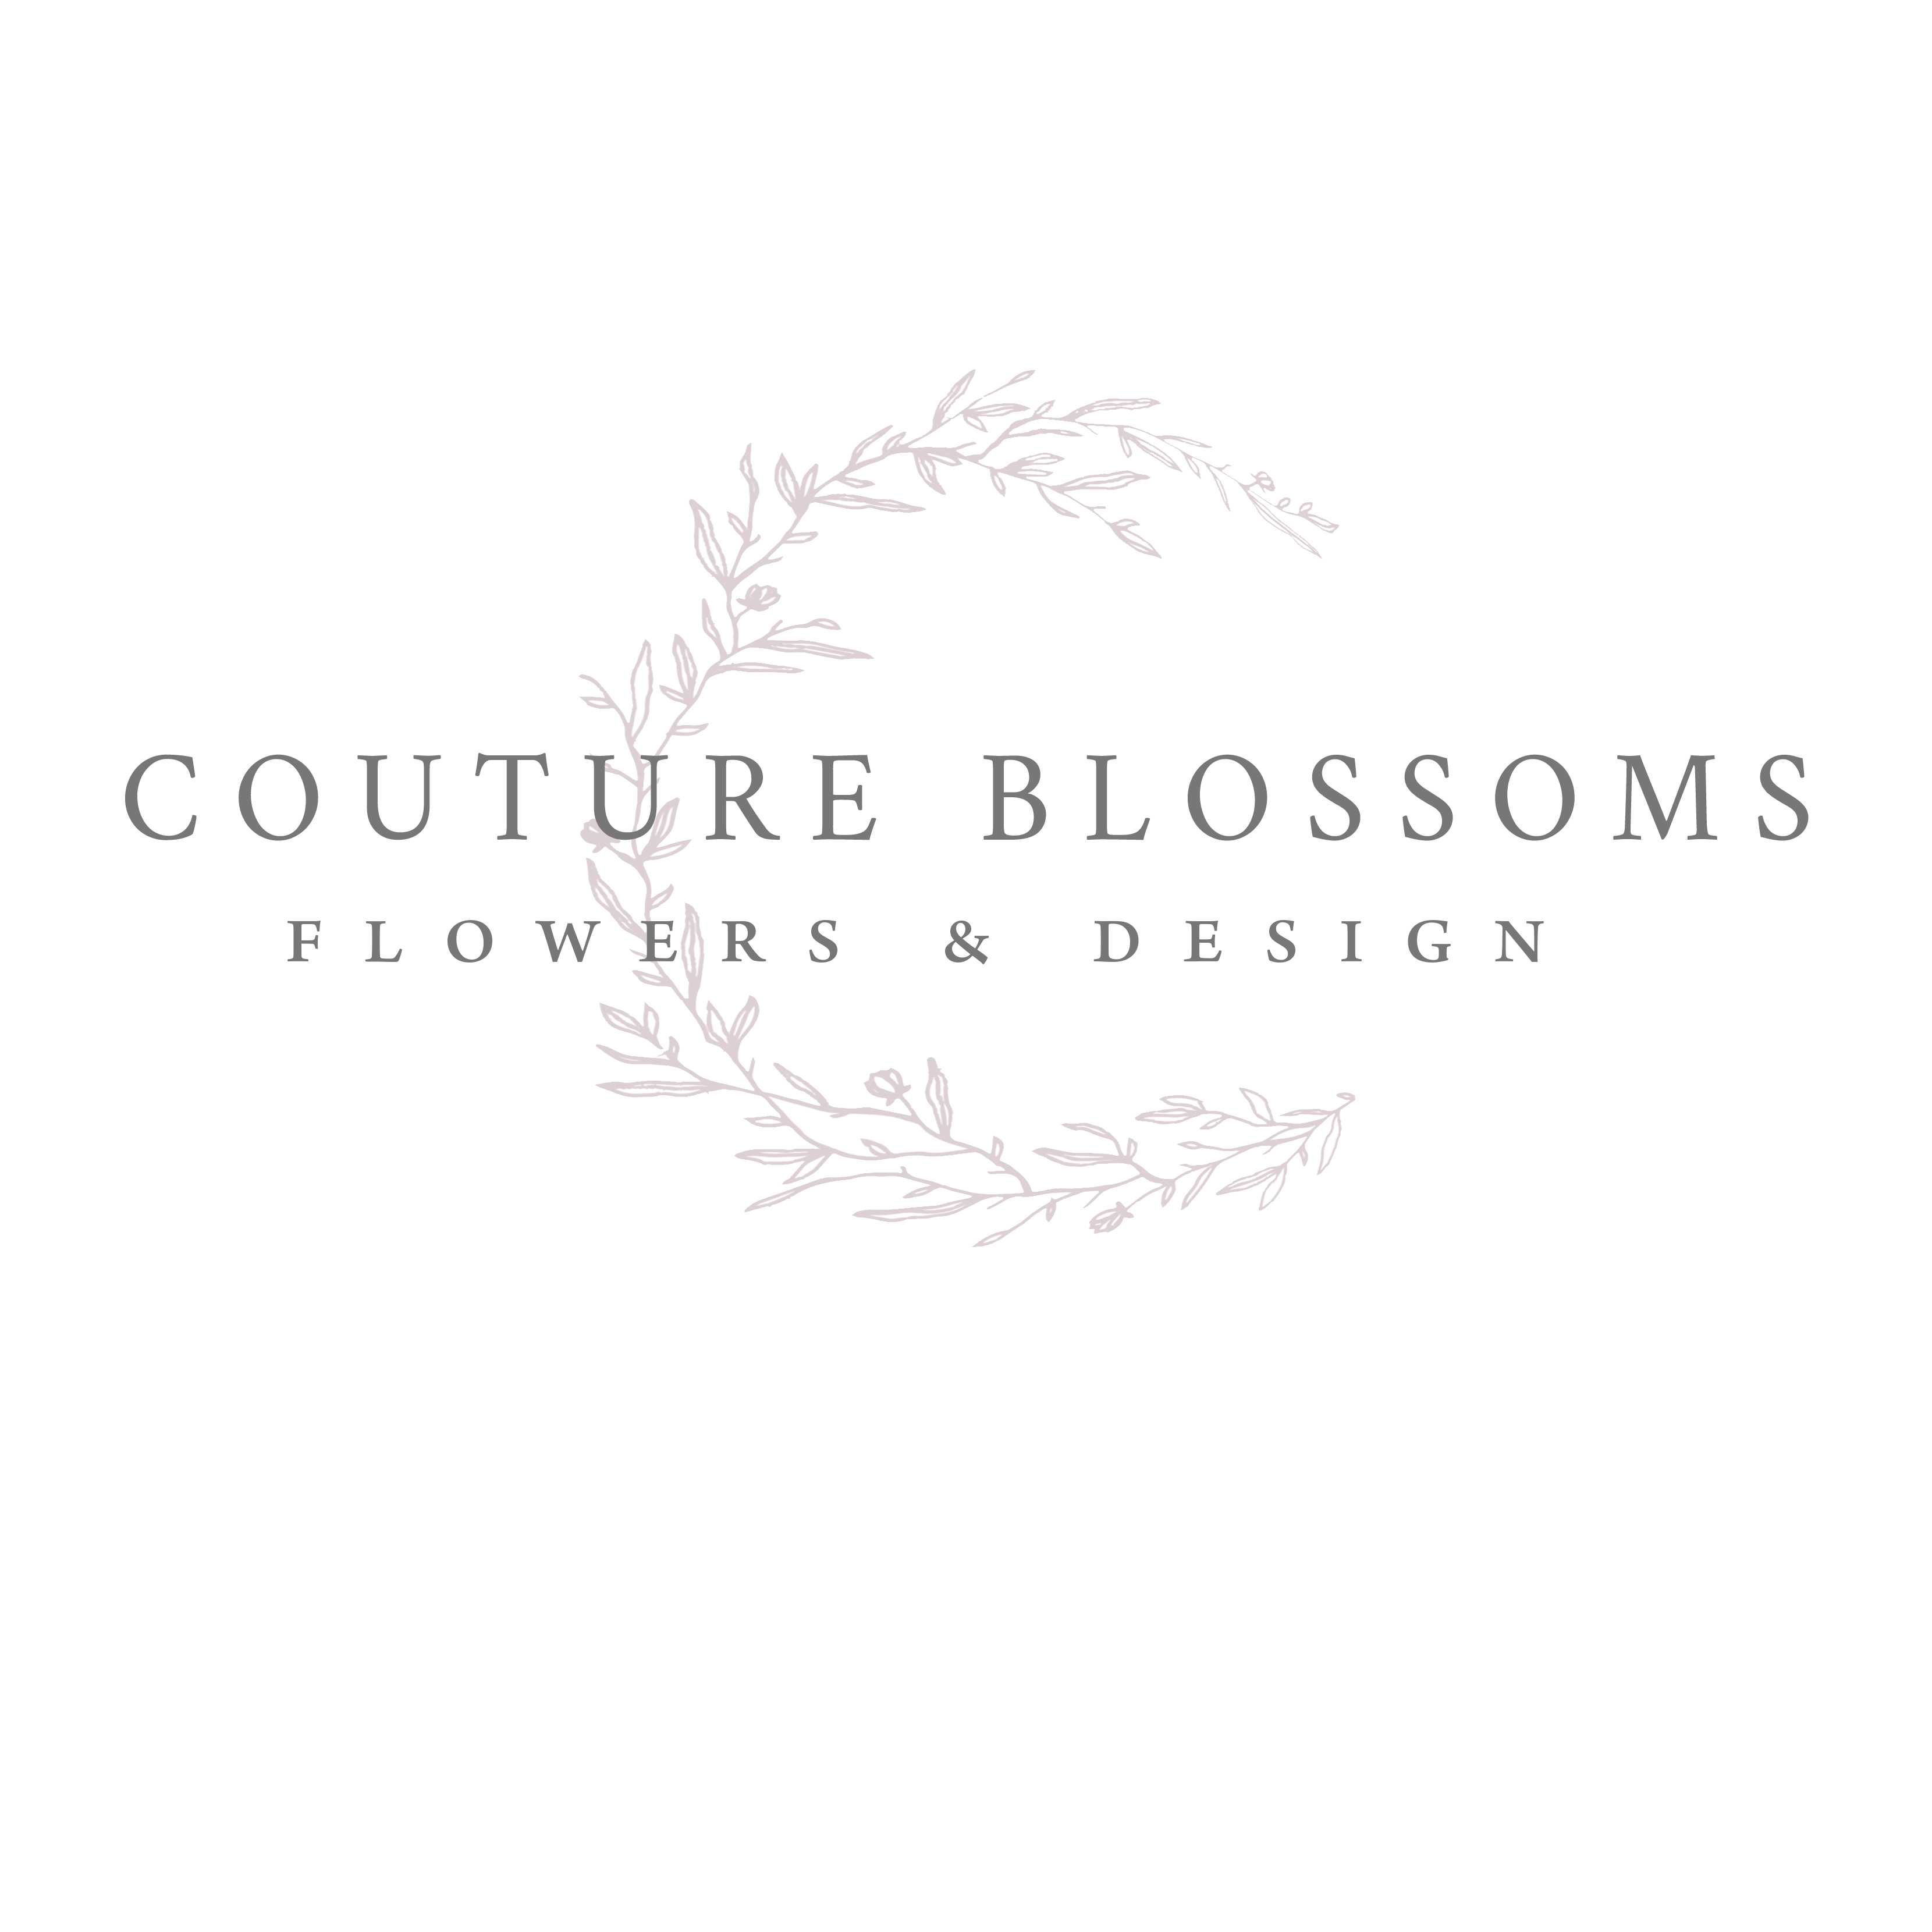 Couture Blossoms